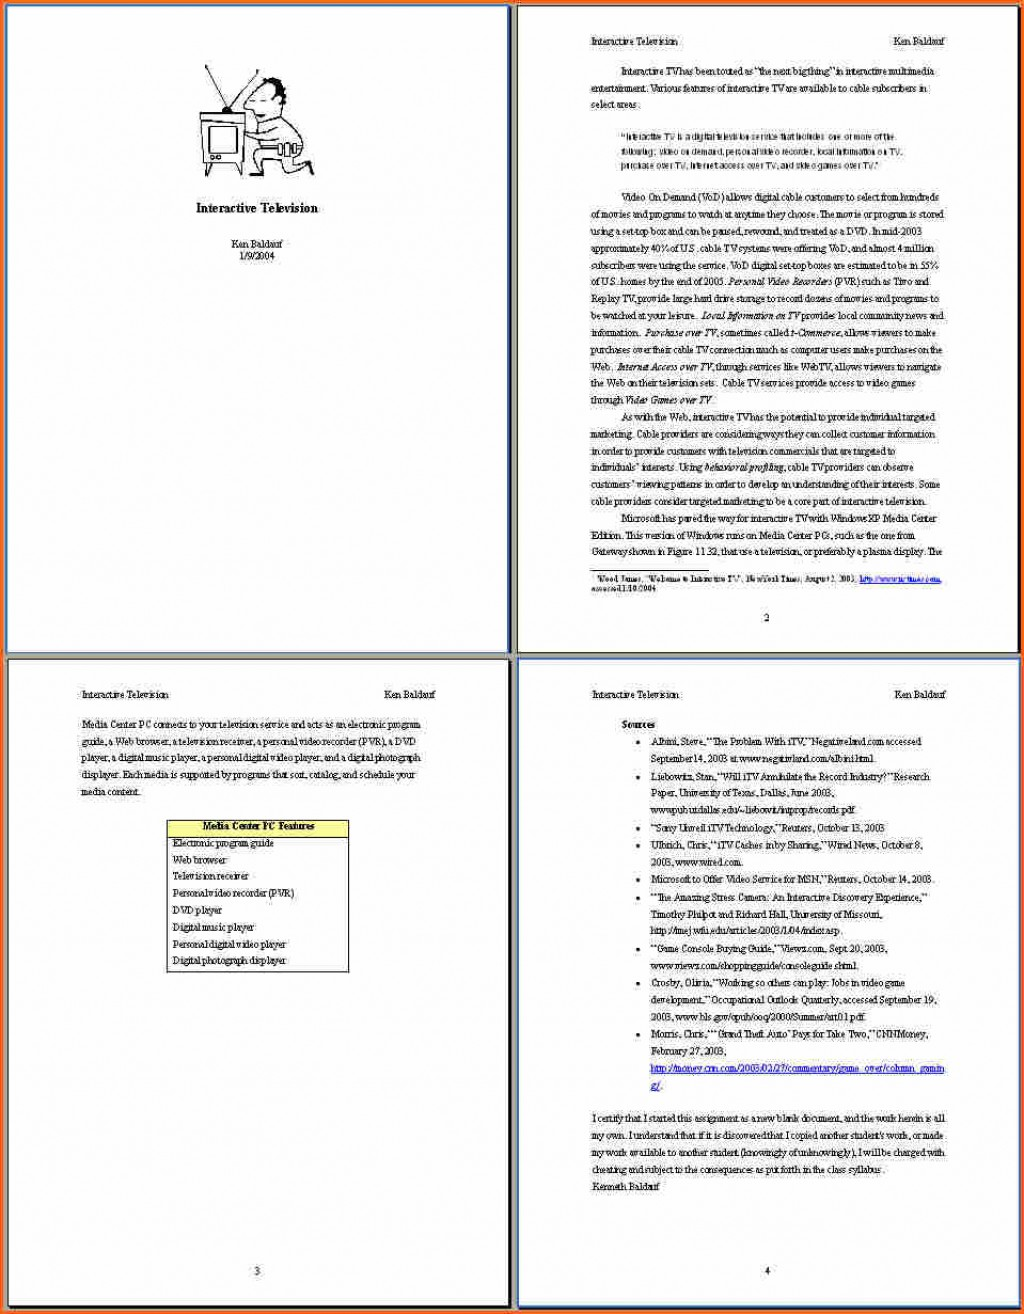 003 What Is An Apa Style Paper A1 Example Ap Research Formidable Sample 6 Format Owl 2013 Large